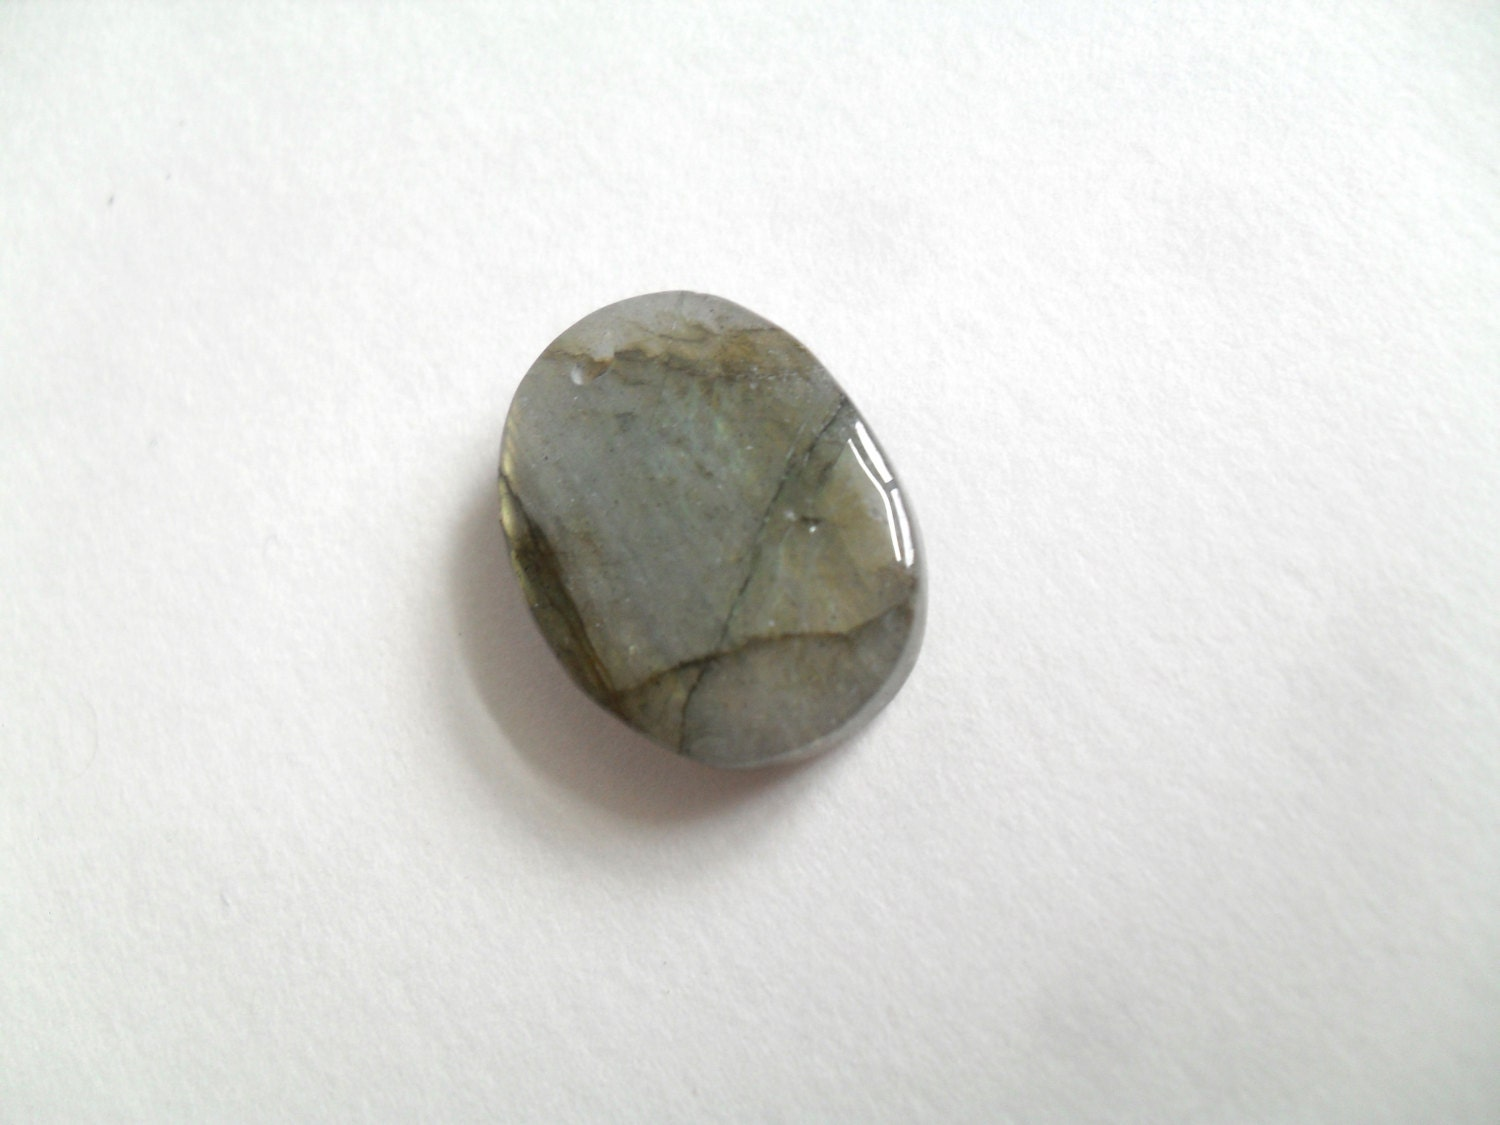 Labradorite Pendant, Small Oval Gemstone Pendant Bead from ...